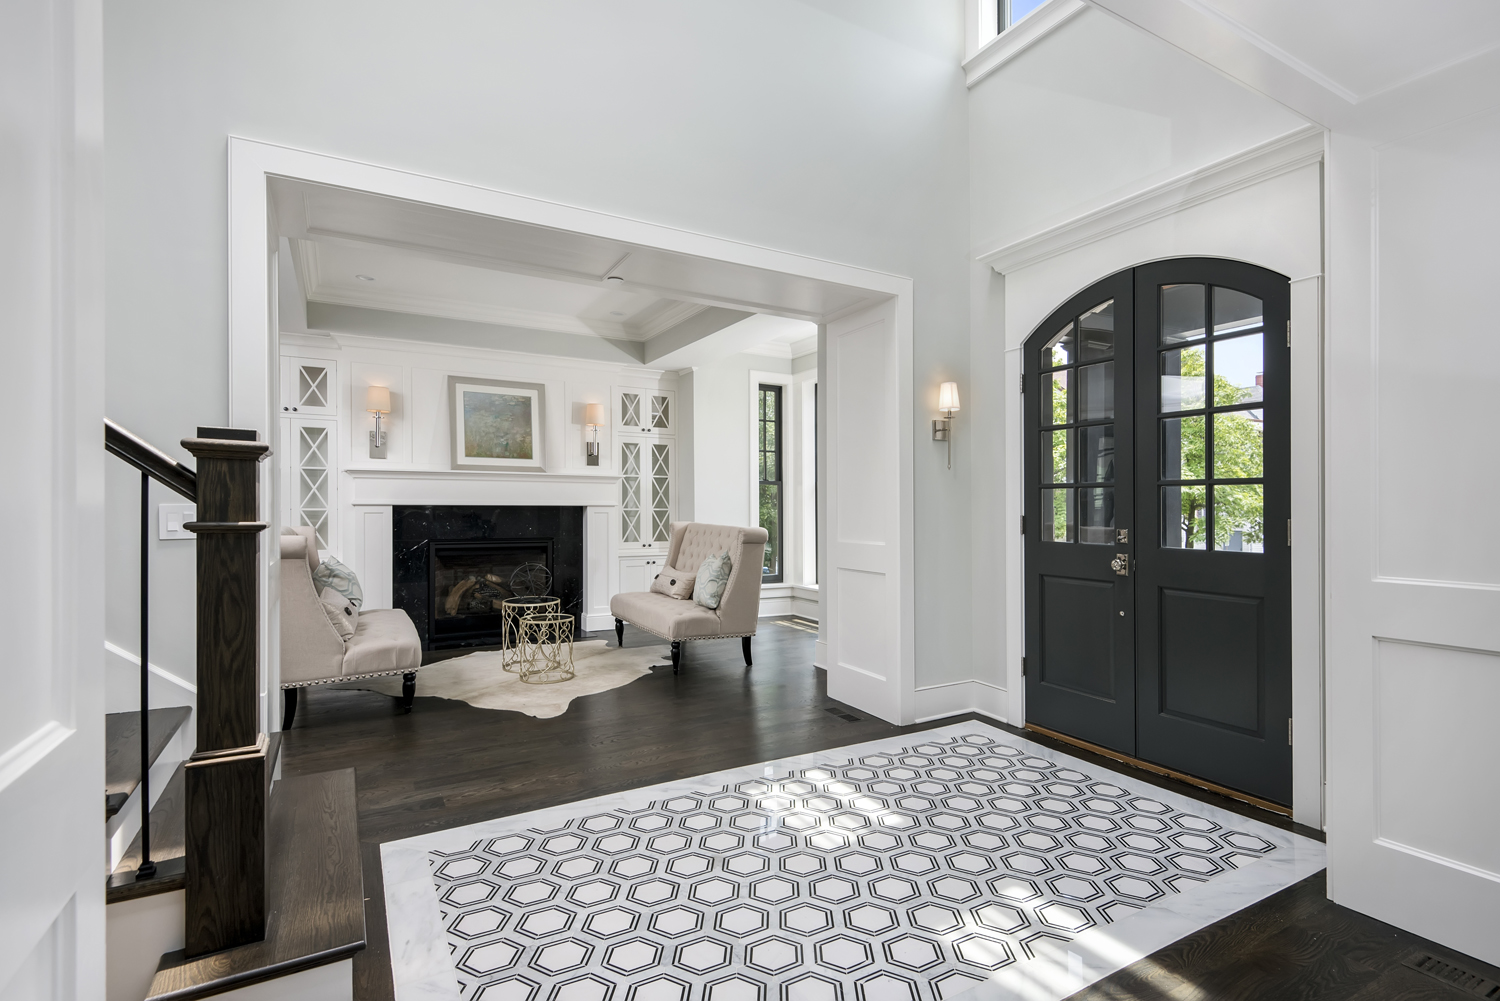 Foyer Tile Direction : Flooring trends step in a modern direction taylor johnson